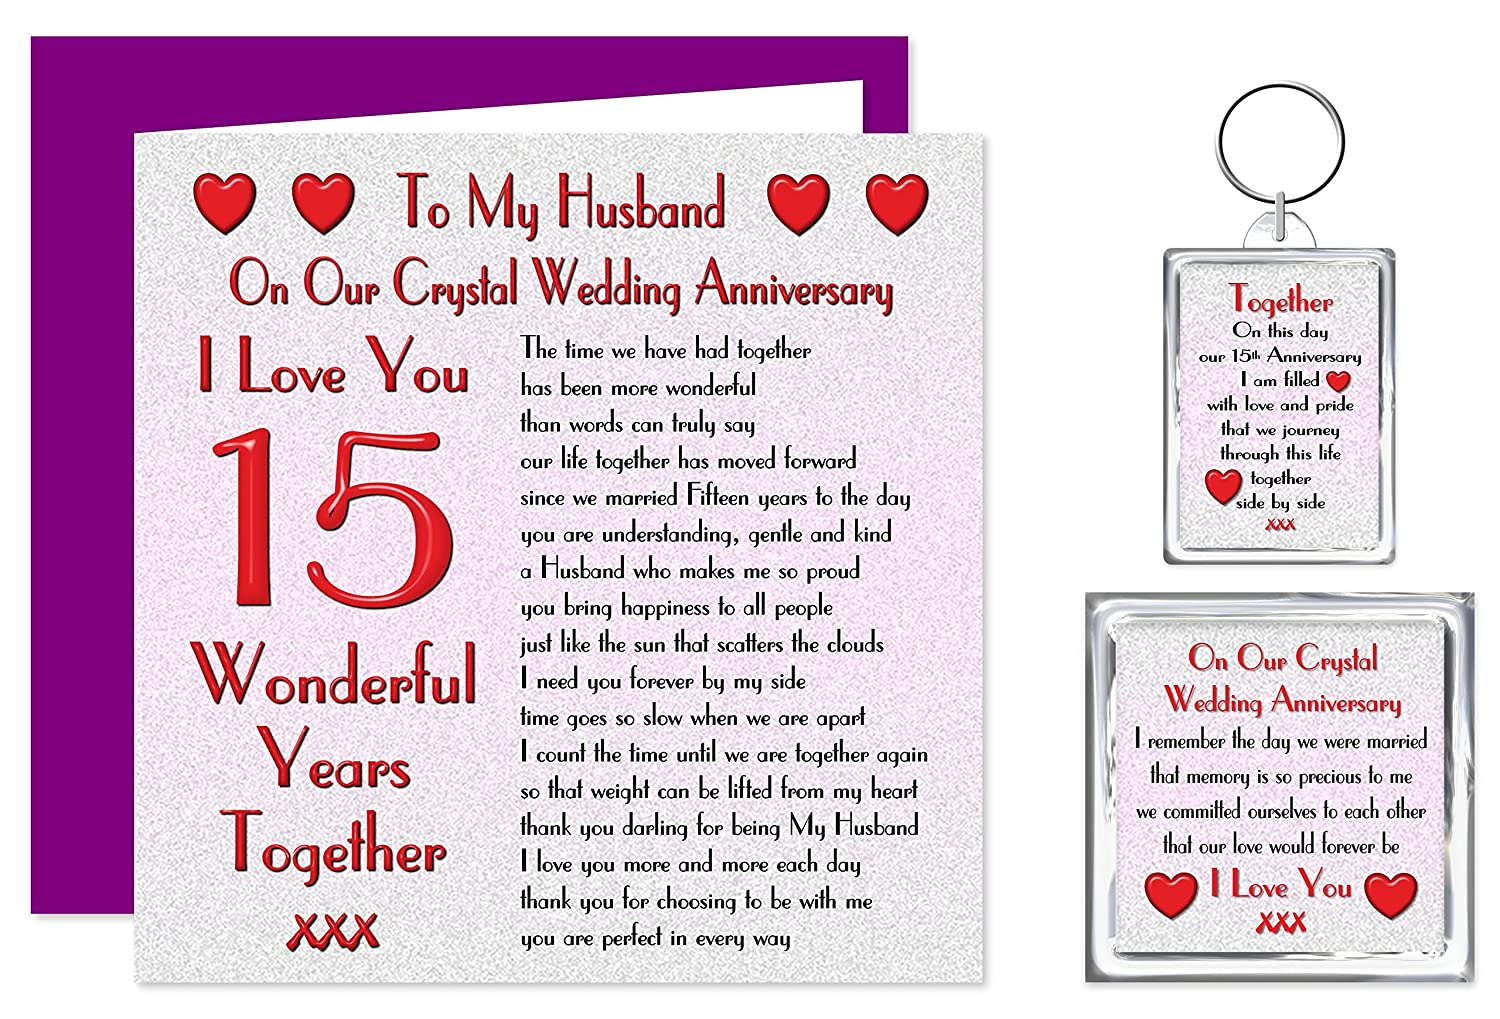 15 Year Wedding Anniversary Gift For Husband: What Gift Do You Give For 35th Wedding Anniversary